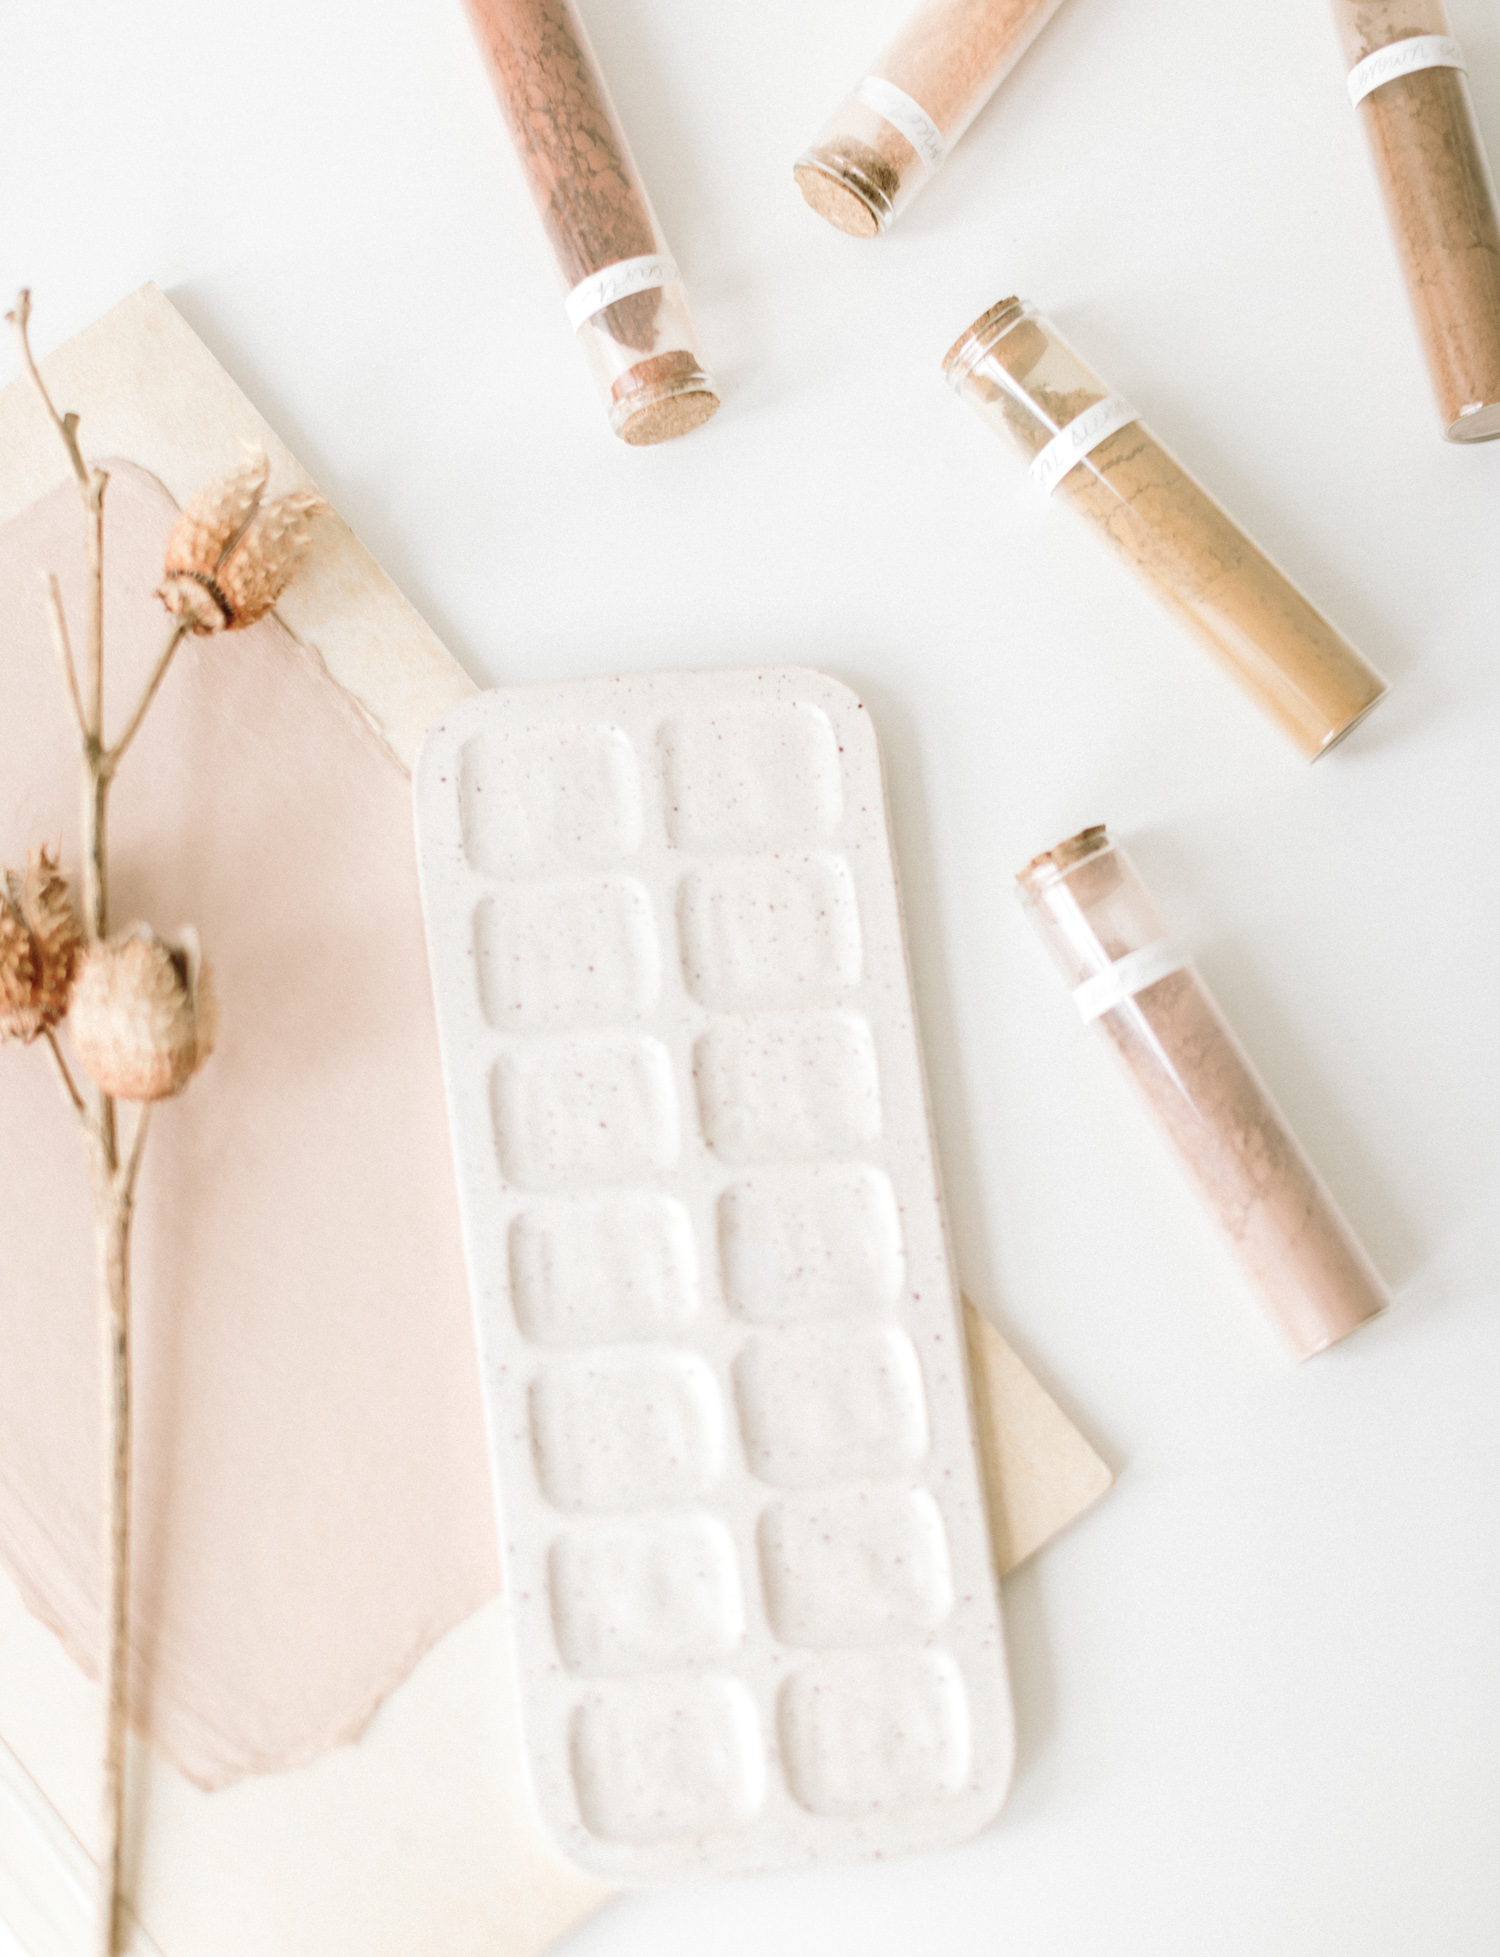 A ceramic paint palette rests on a white surface with paint pigment powder and dried florals for a brand photoshoot in Detroit, Michigan